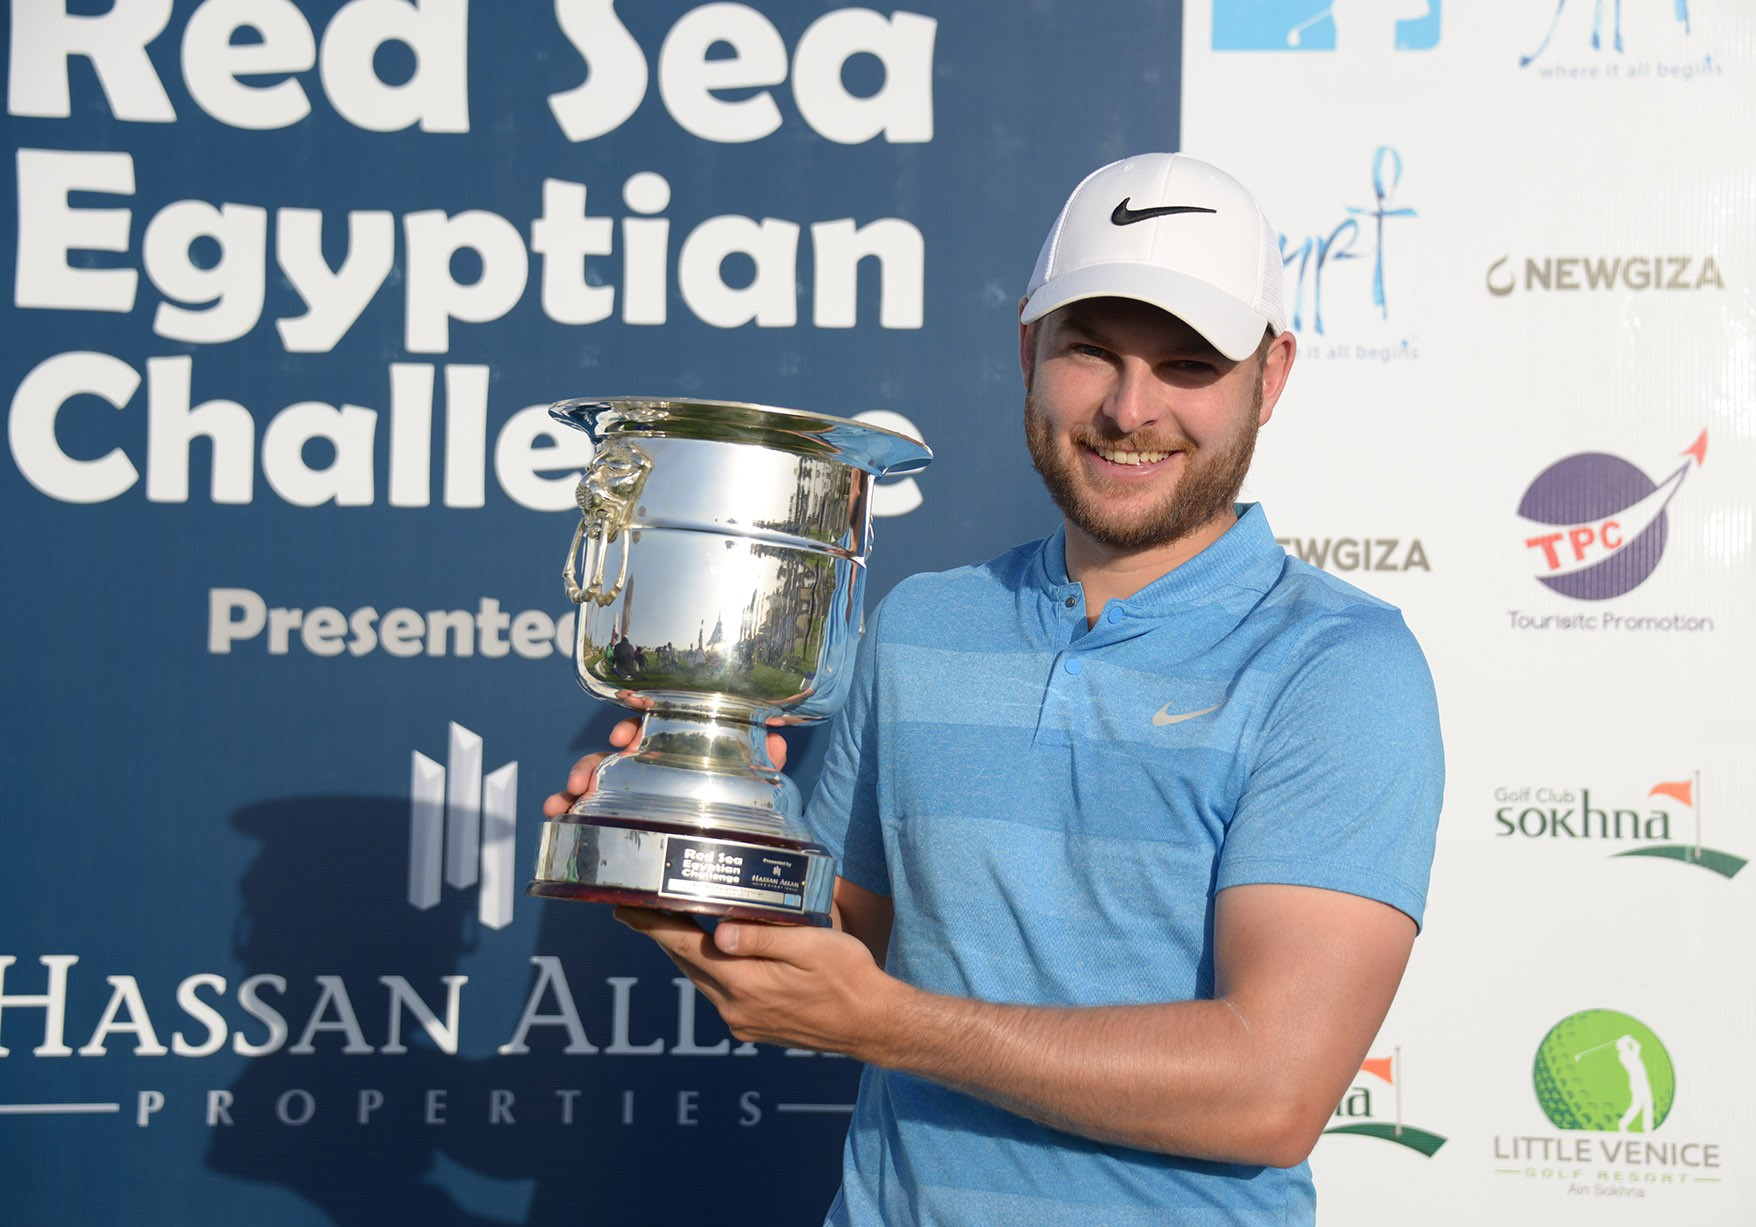 Jordan Smith celebrates with the Red Sea Egyptian Challenge trophy